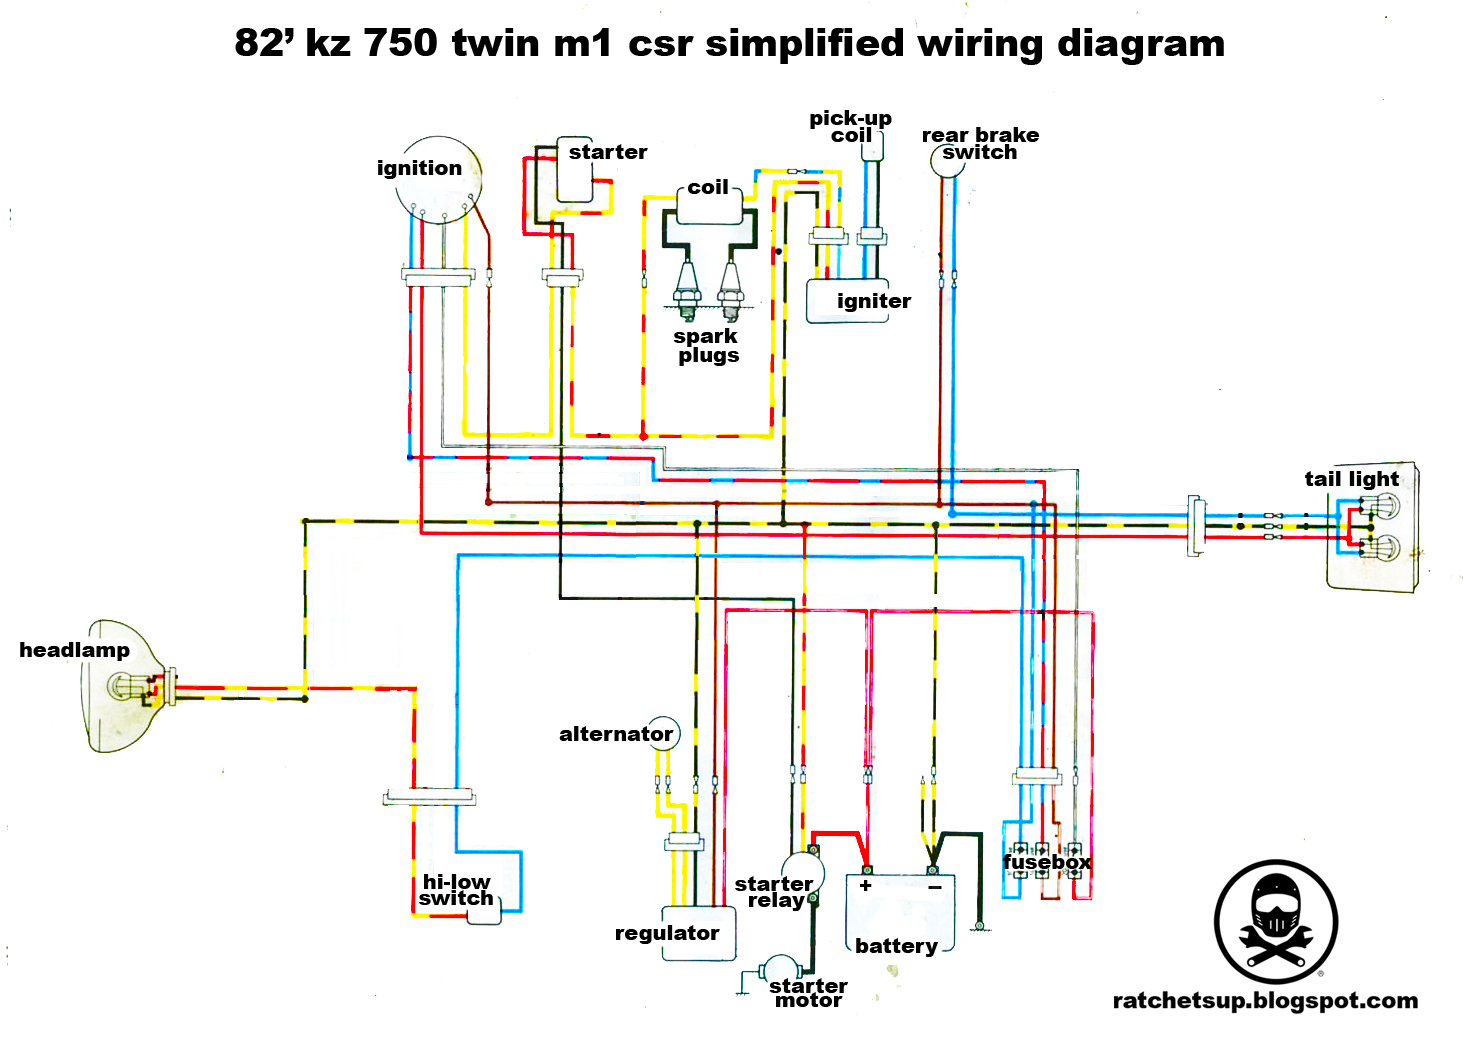 kz750+simple+diagram simplified minimal kz750 csr wiring diagram kzrider forum kz750 wiring diagram at n-0.co